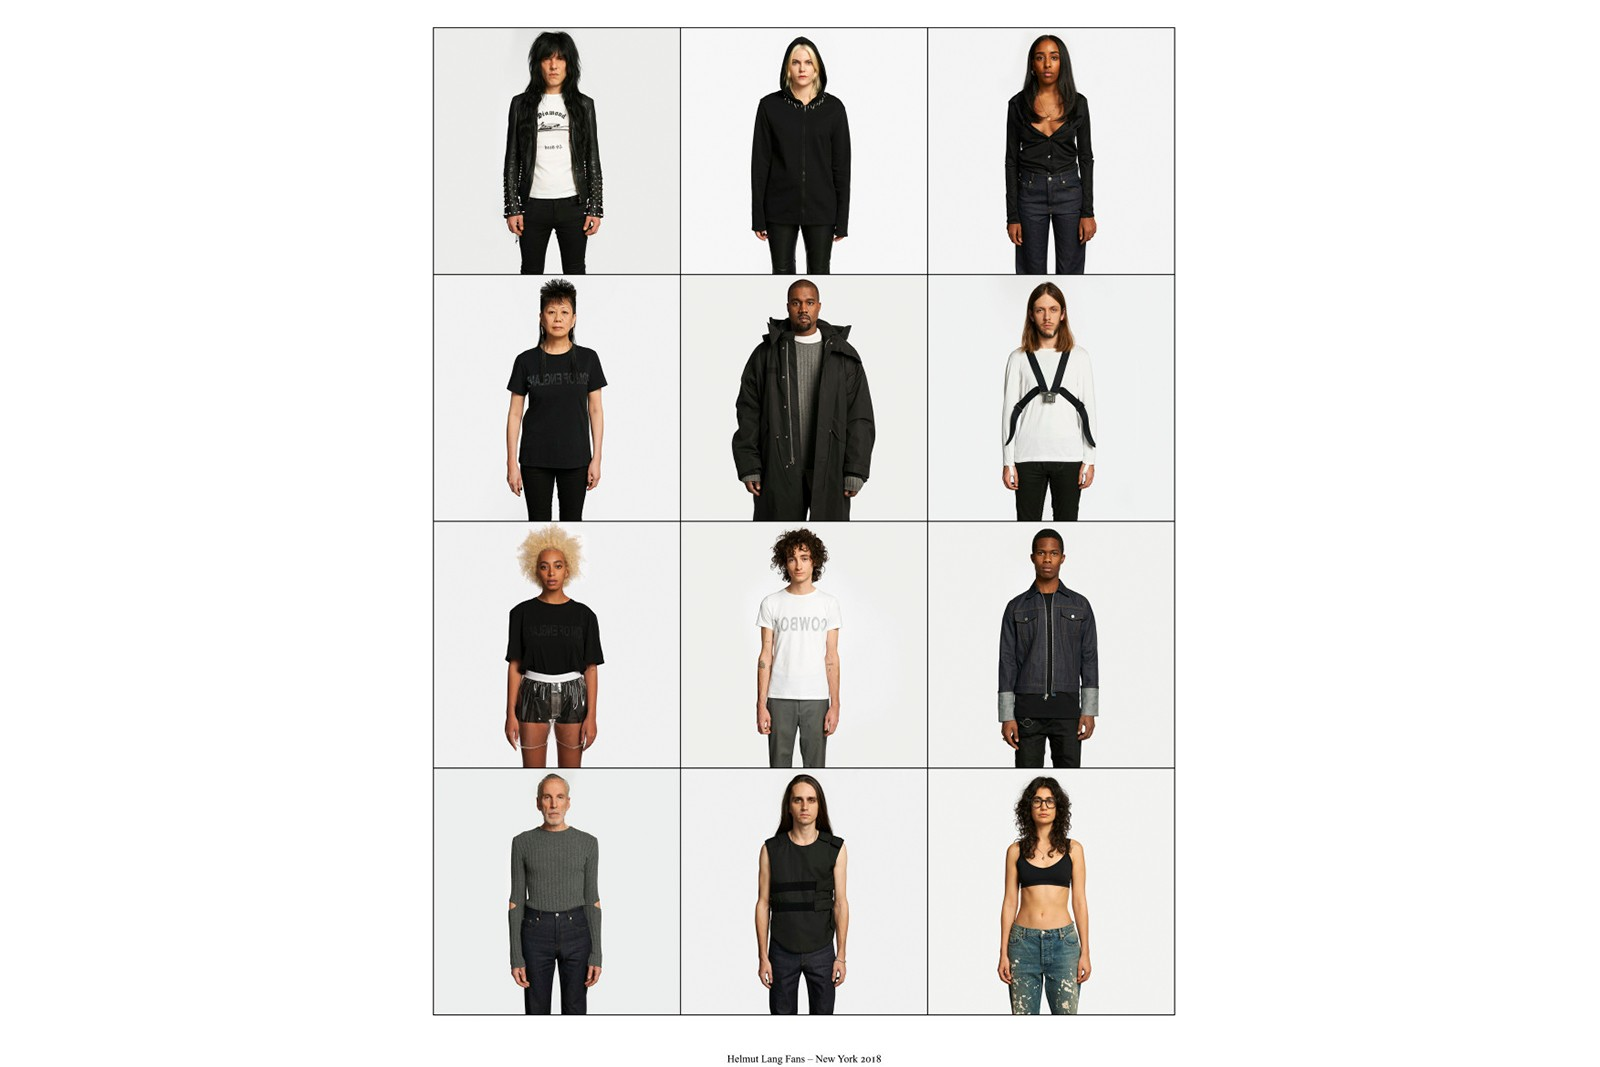 EXACTITUDES®: 令 Helmut Lang、Vetements 與 Palace 爭相借鑒的亞文化「工具書」